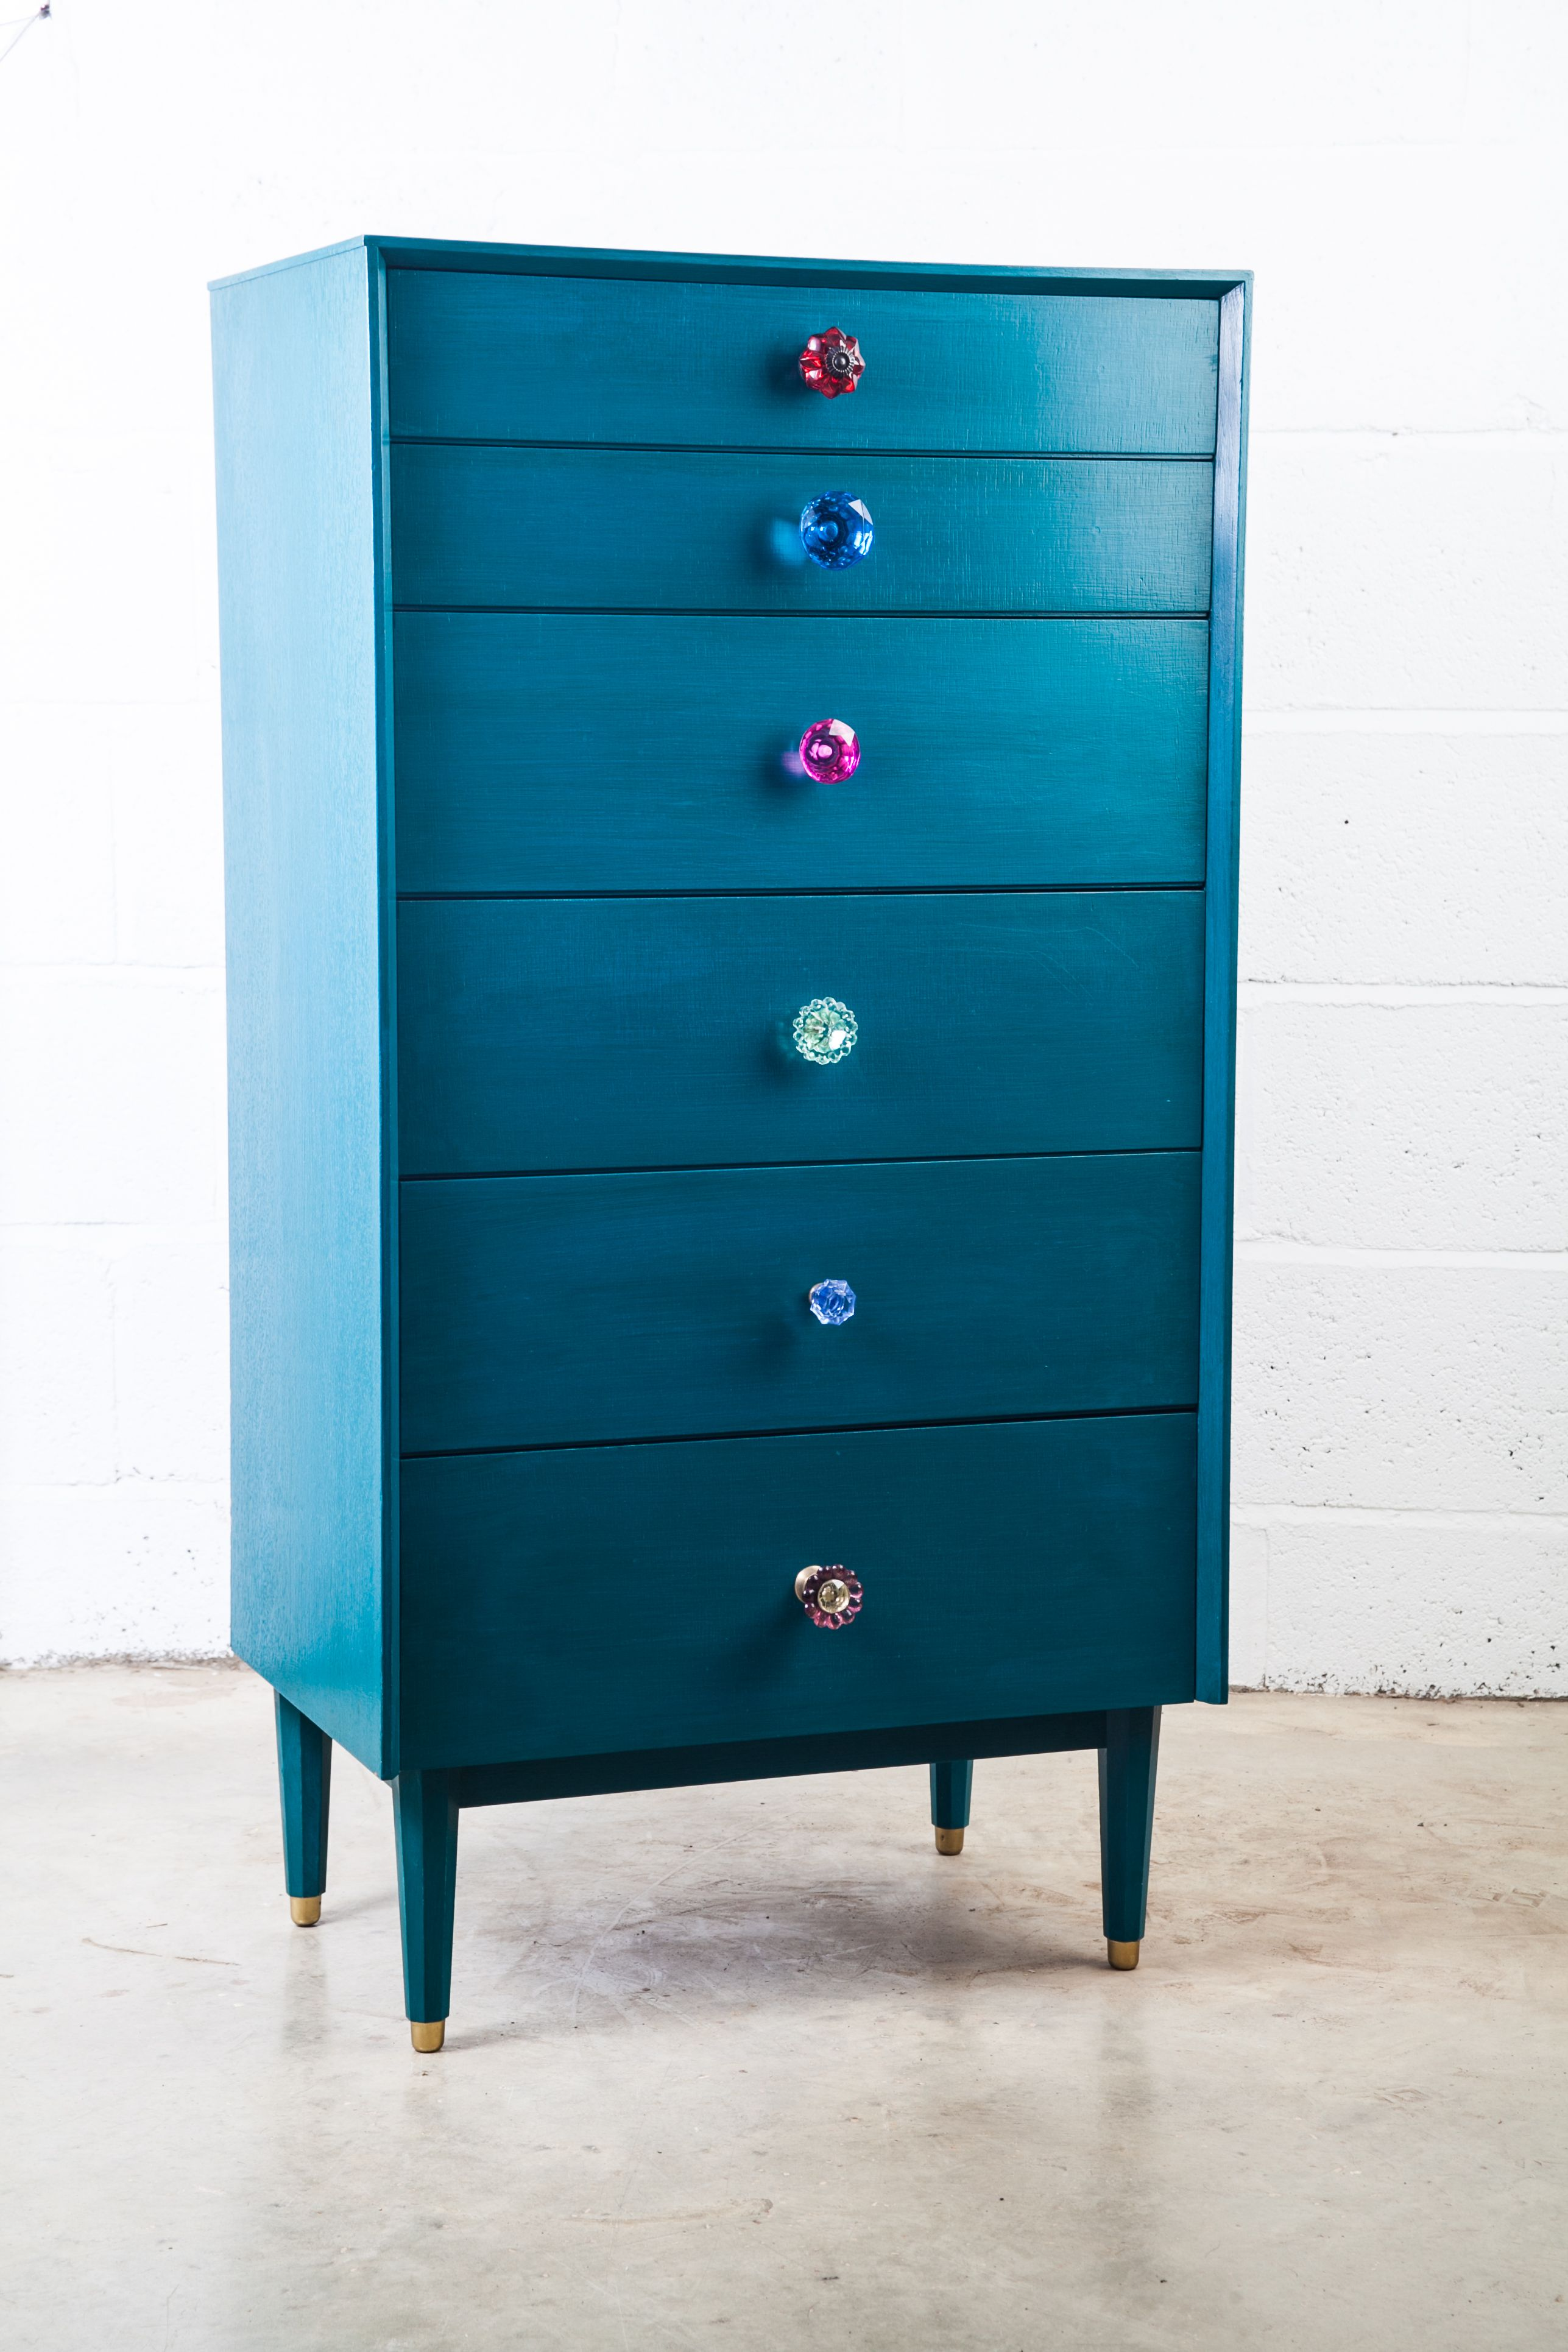 Vivienne Velvet Eccentric Painted Retro Tallboy Hand Glazed In Layers To Achieve This Striking Blue Finish You Want Gl S We Got